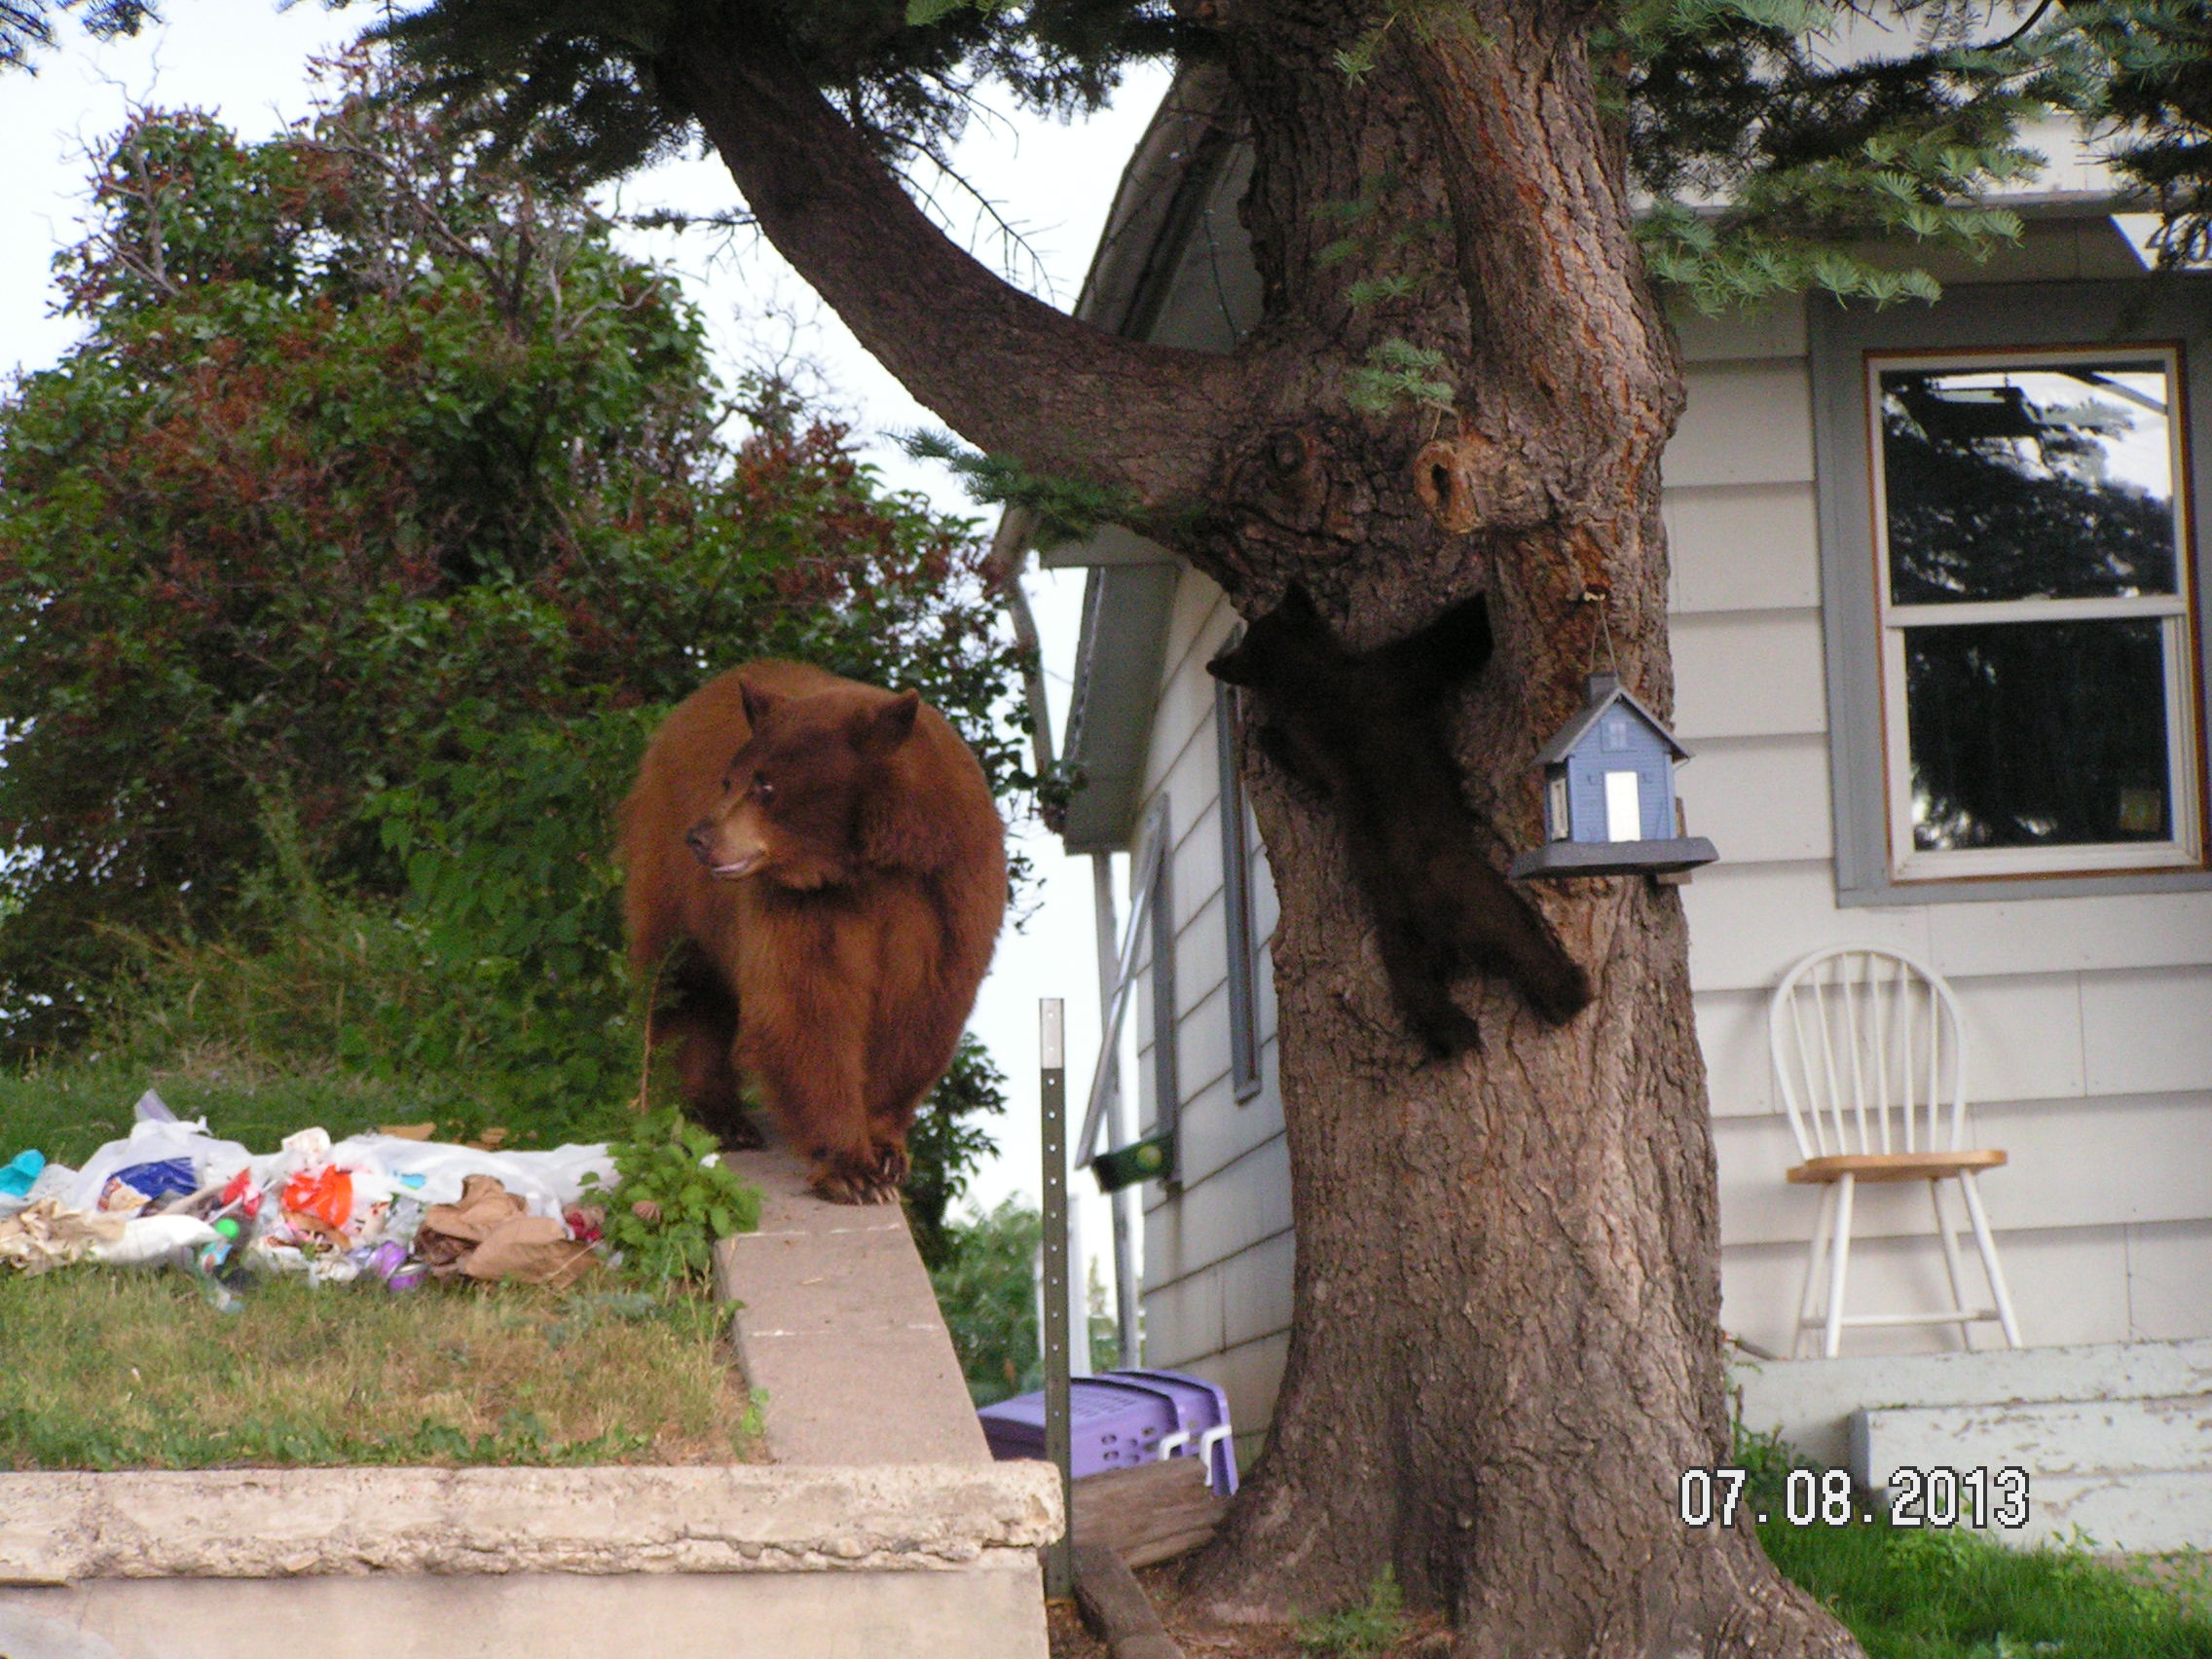 A bear and cub sort through trash near a home. [Photo courtesy of Colorado Parks & Wildlife]